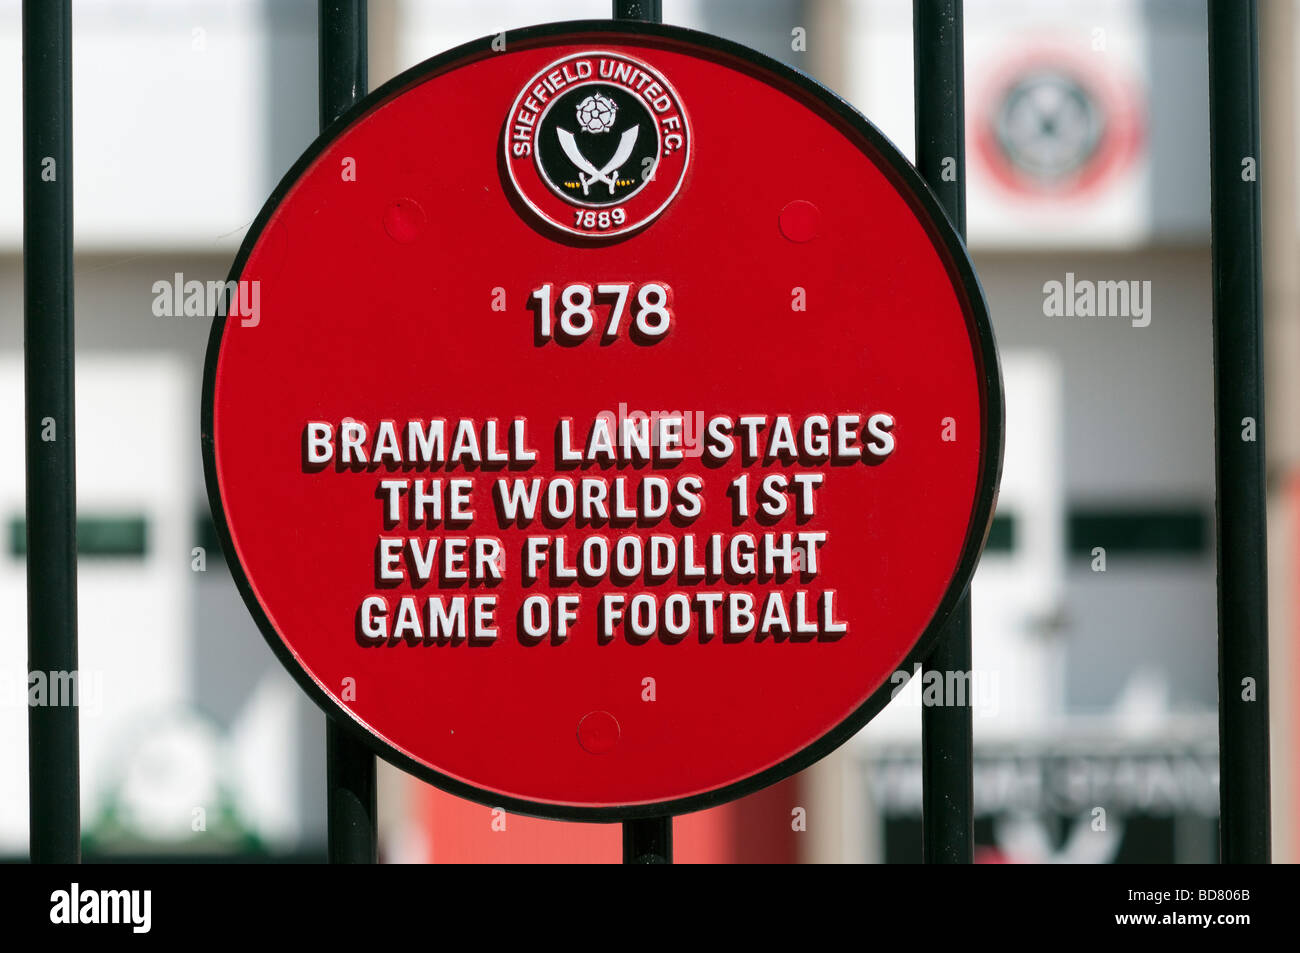 Red circular commemorative plaque 'Bramall Lane' stages the worlds 1st Floodlit game of football - Stock Image